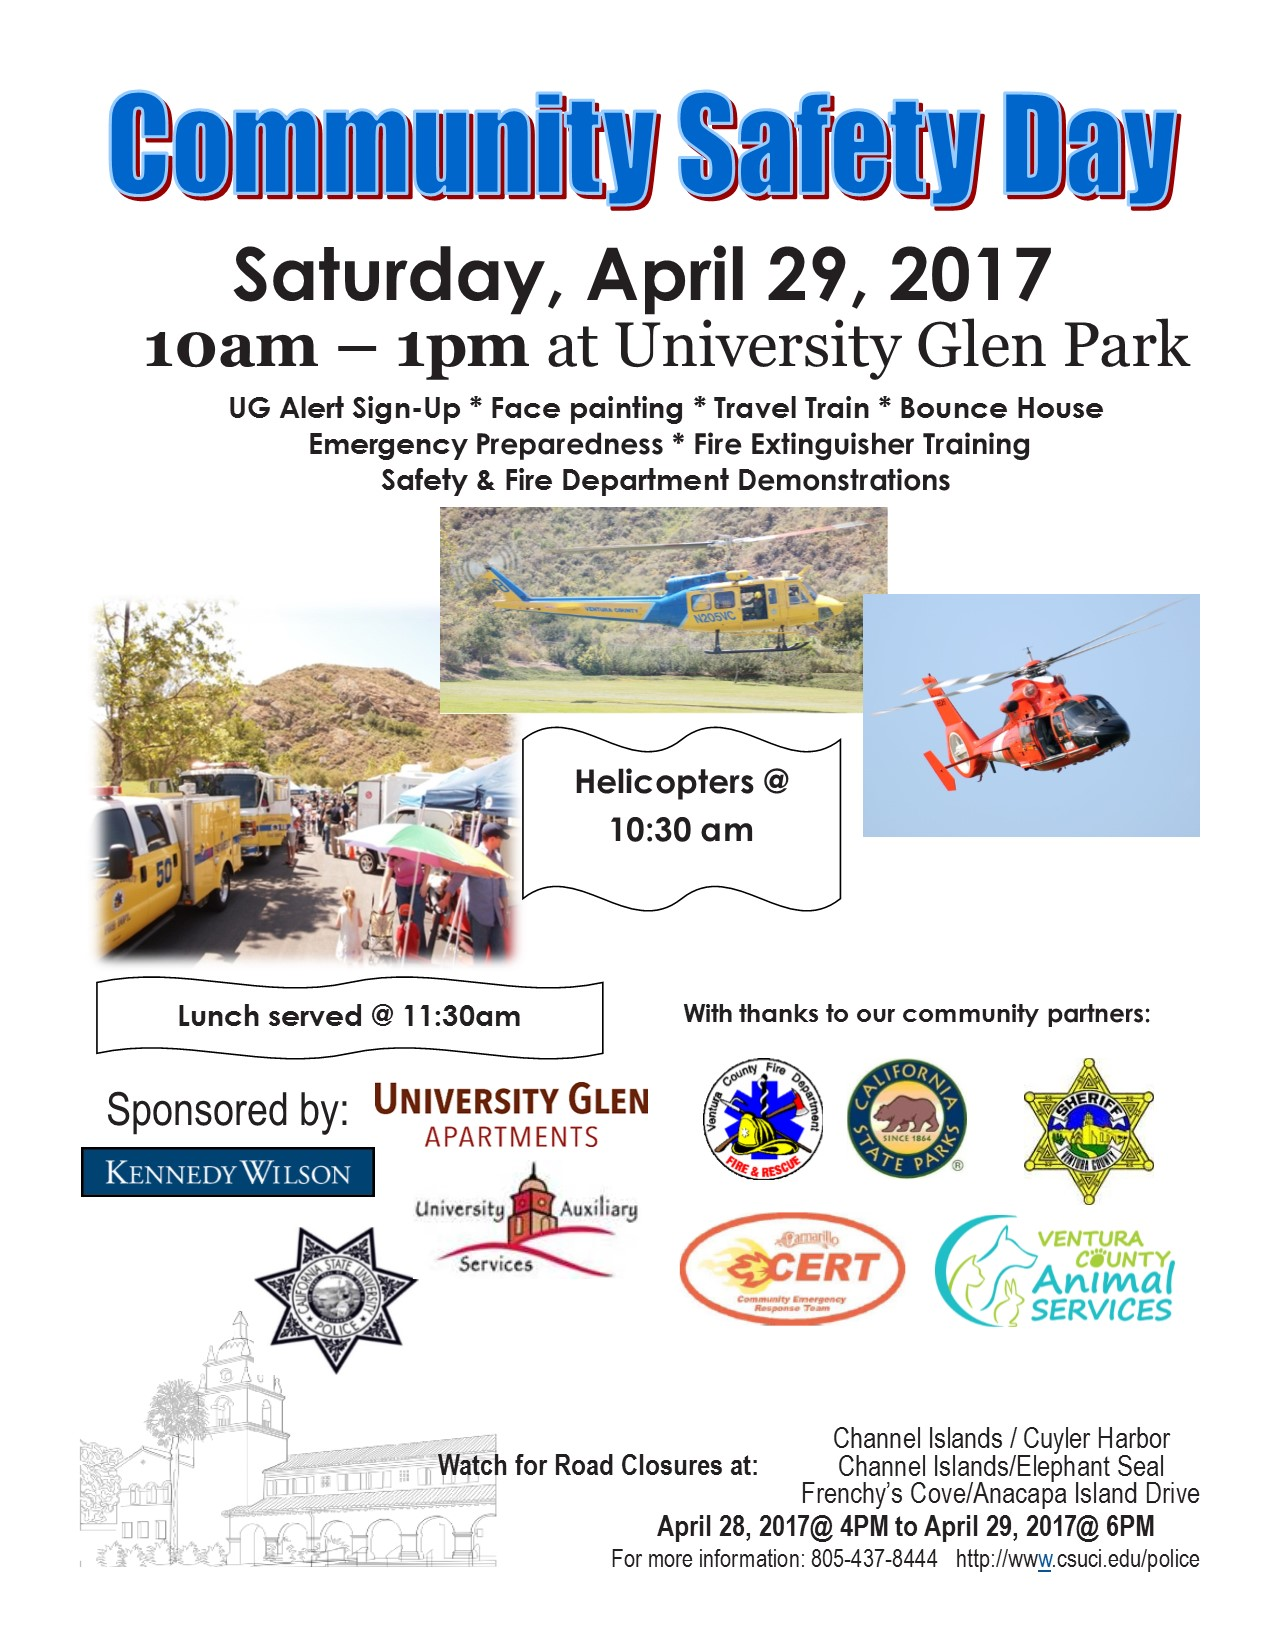 Community Safety Day April 29th Time 10am 1pm